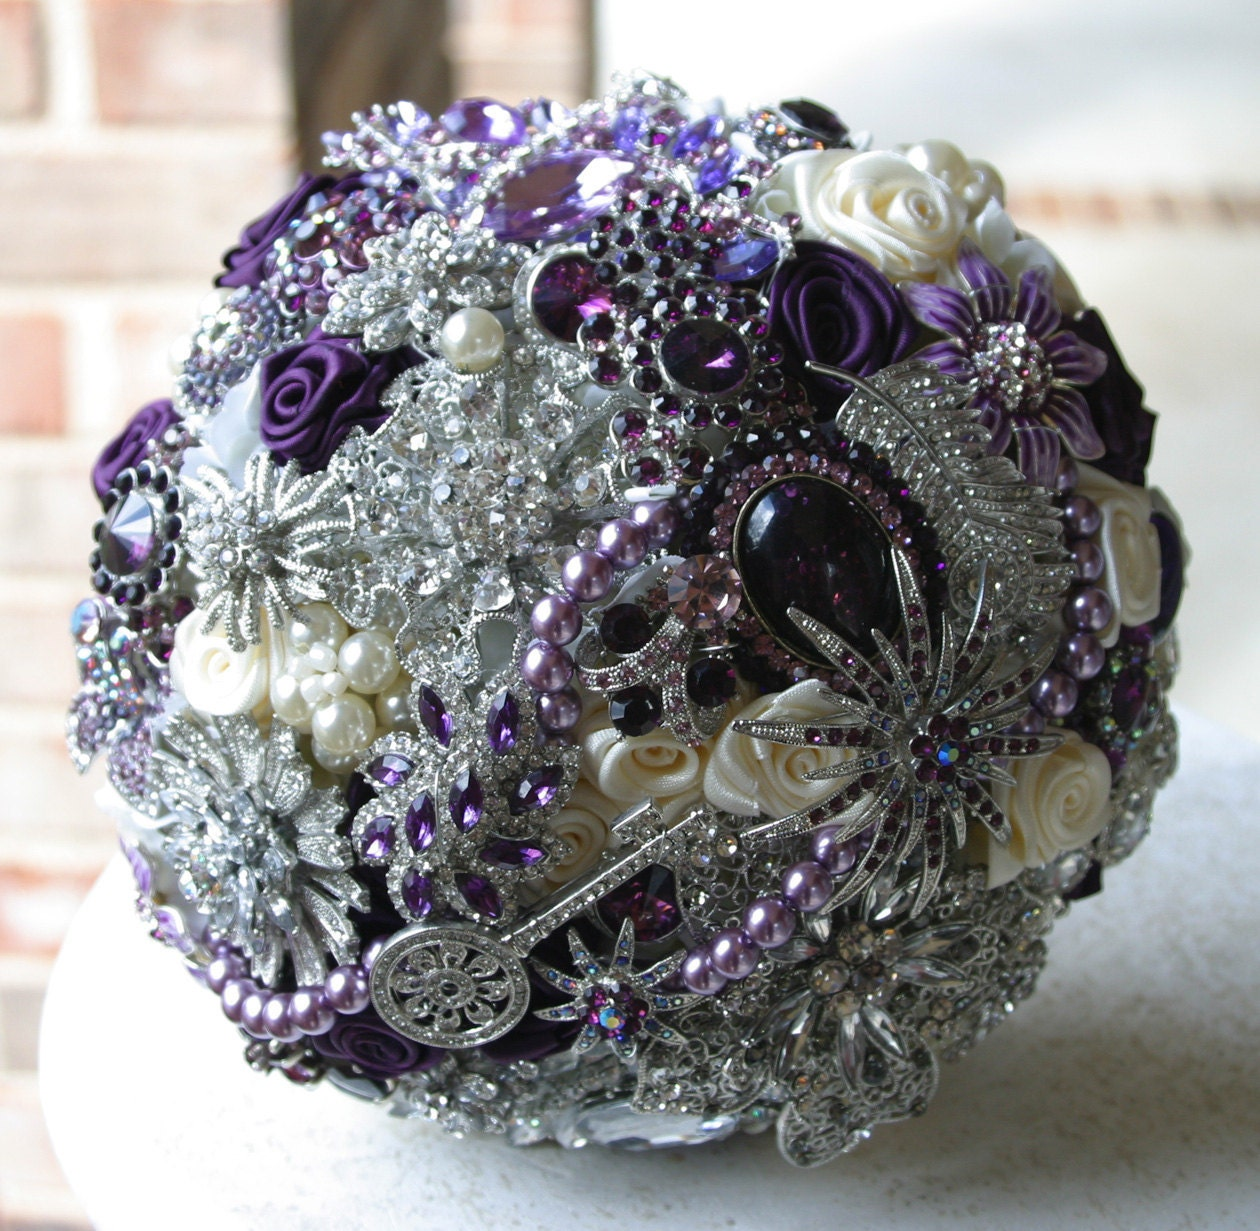 Eggplant Wedding Flowers: INSPIRATION: Brooch Bouquets!